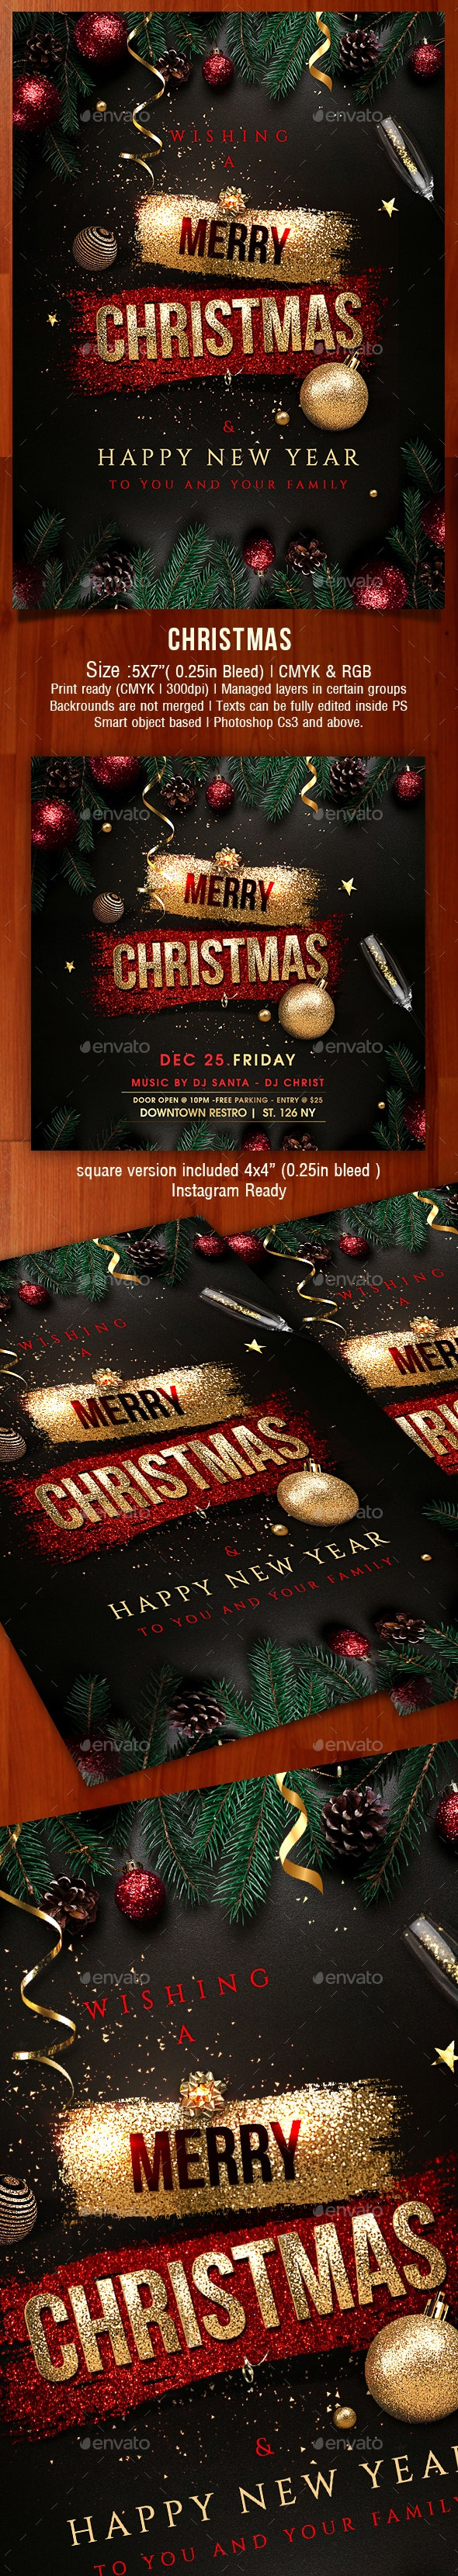 Christmas Cards Invitations - Cards & Invites Print Templates